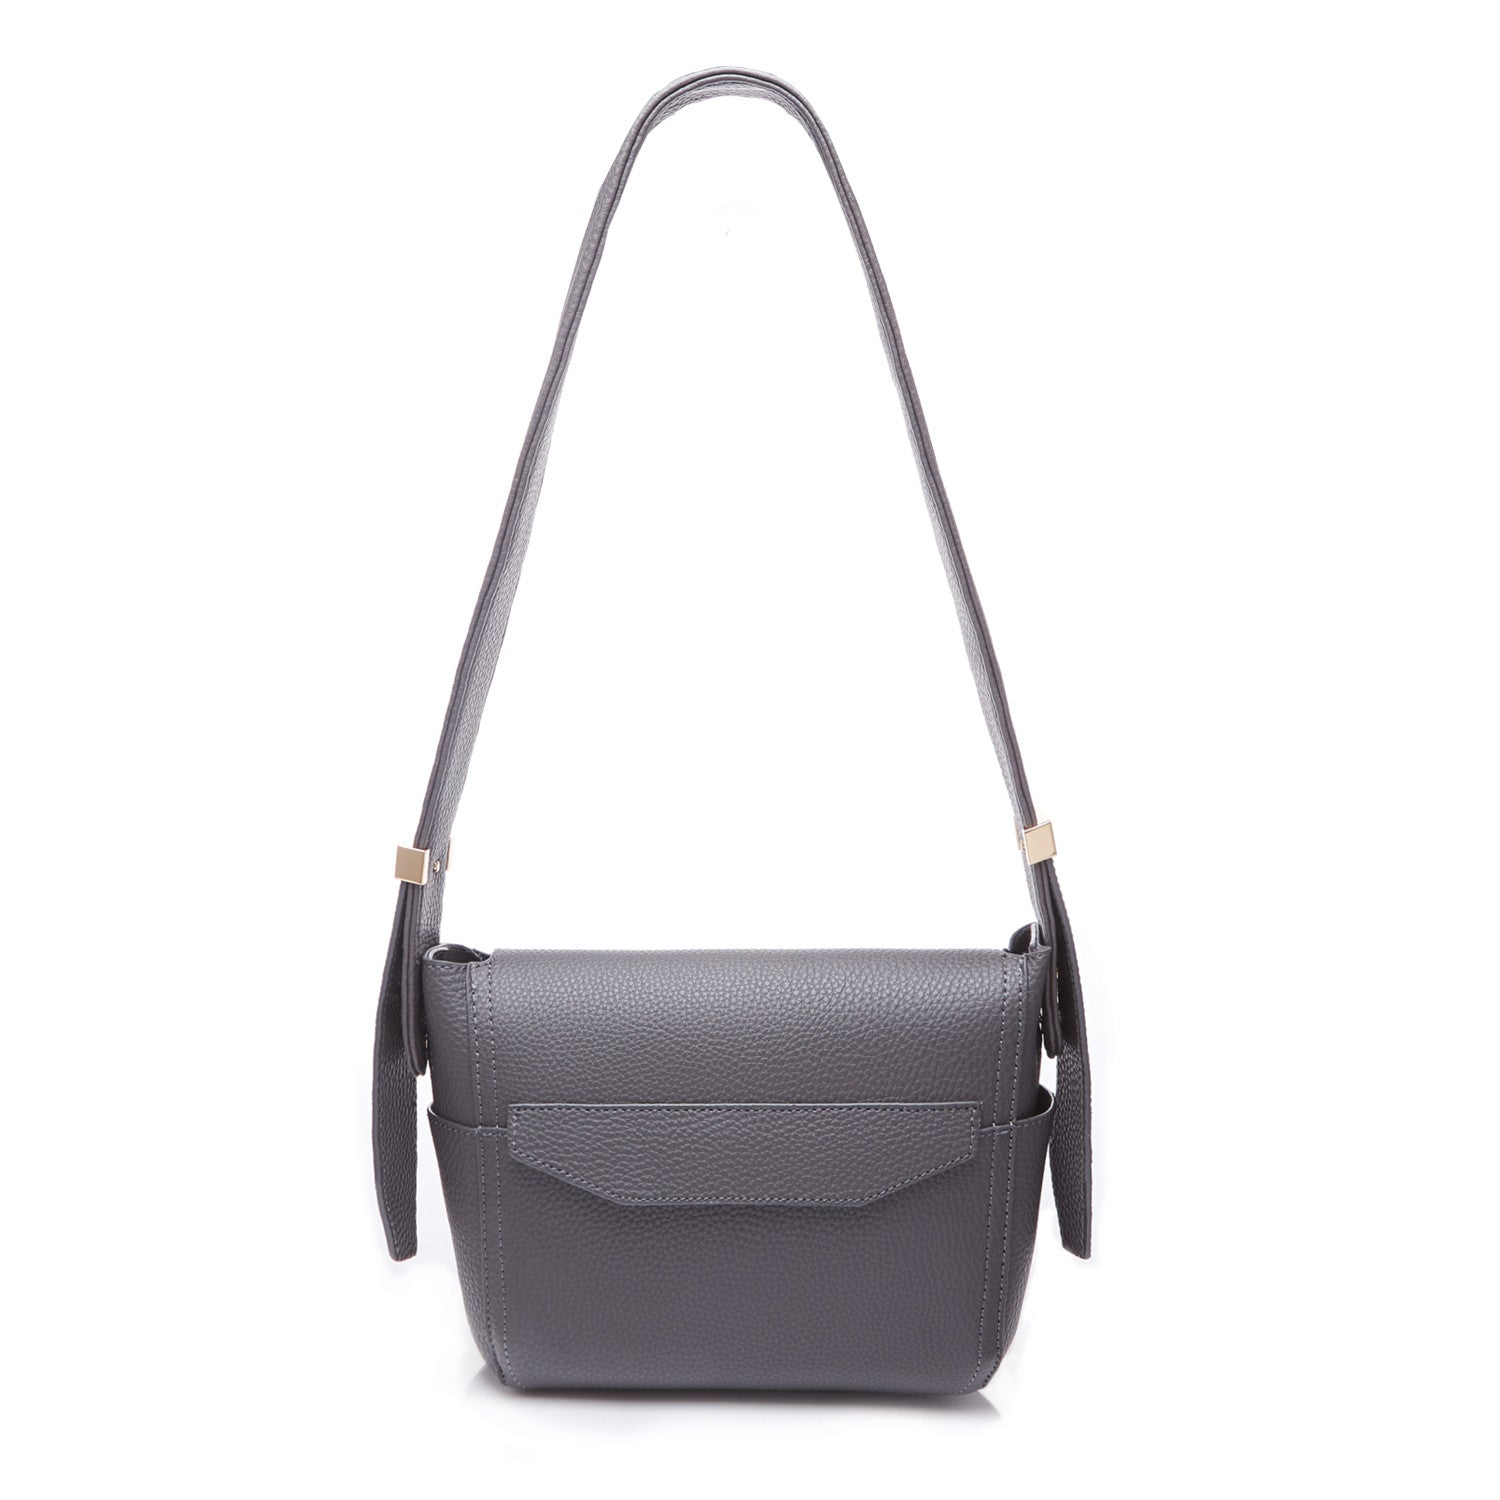 RIBAG MINI - GRAY